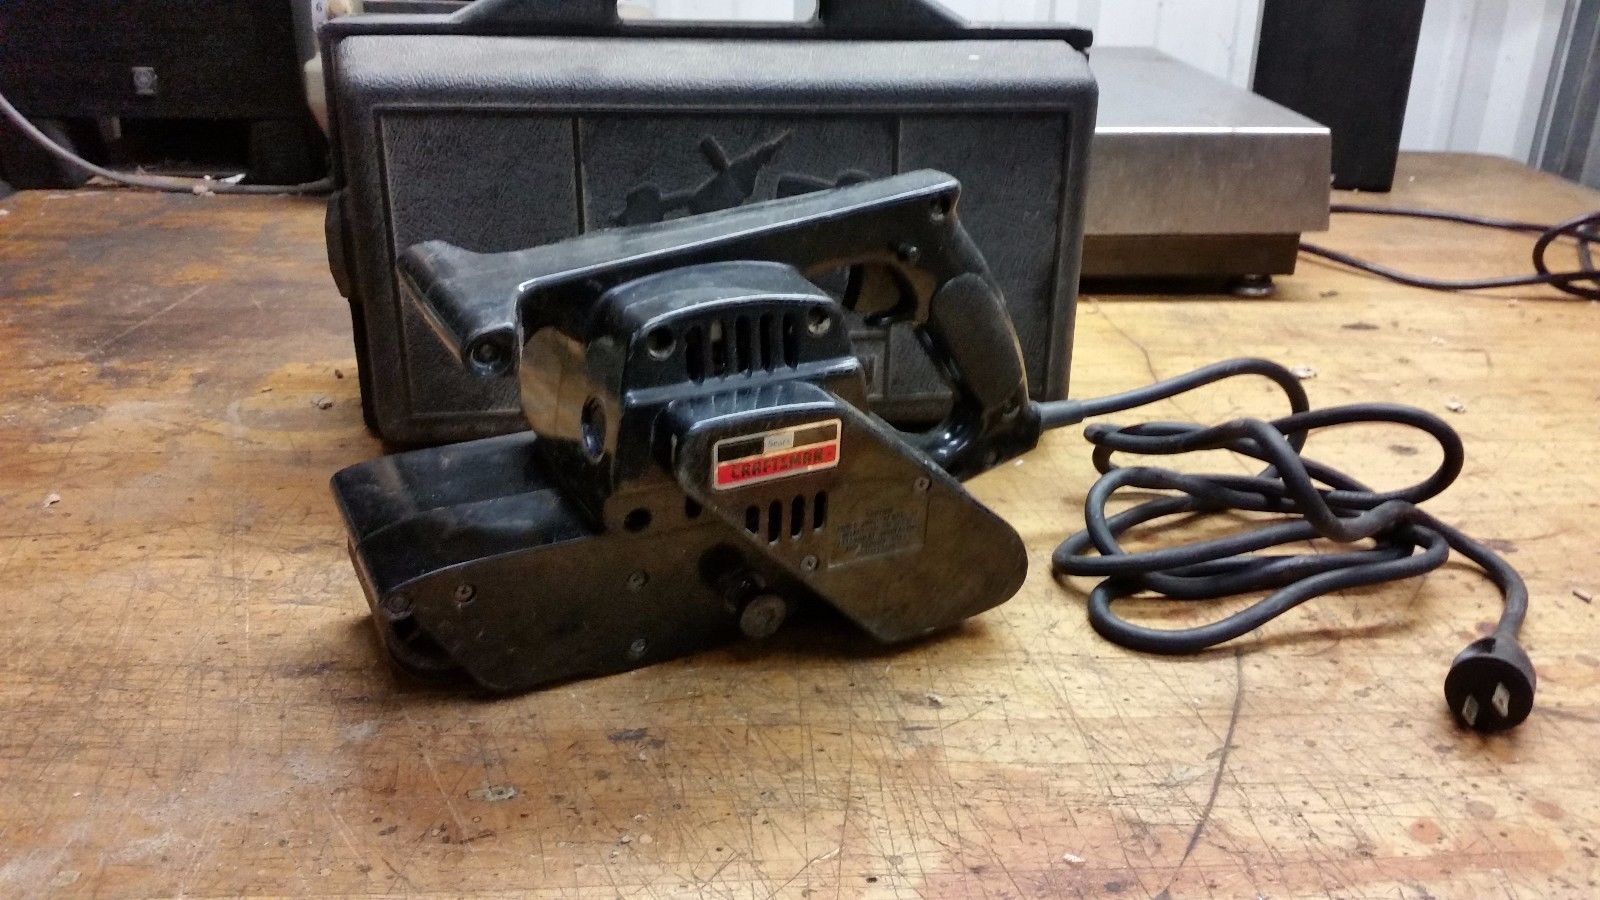 Sears Craftsman 315.11721 3x 21 Corded Electric Belt Sander with case